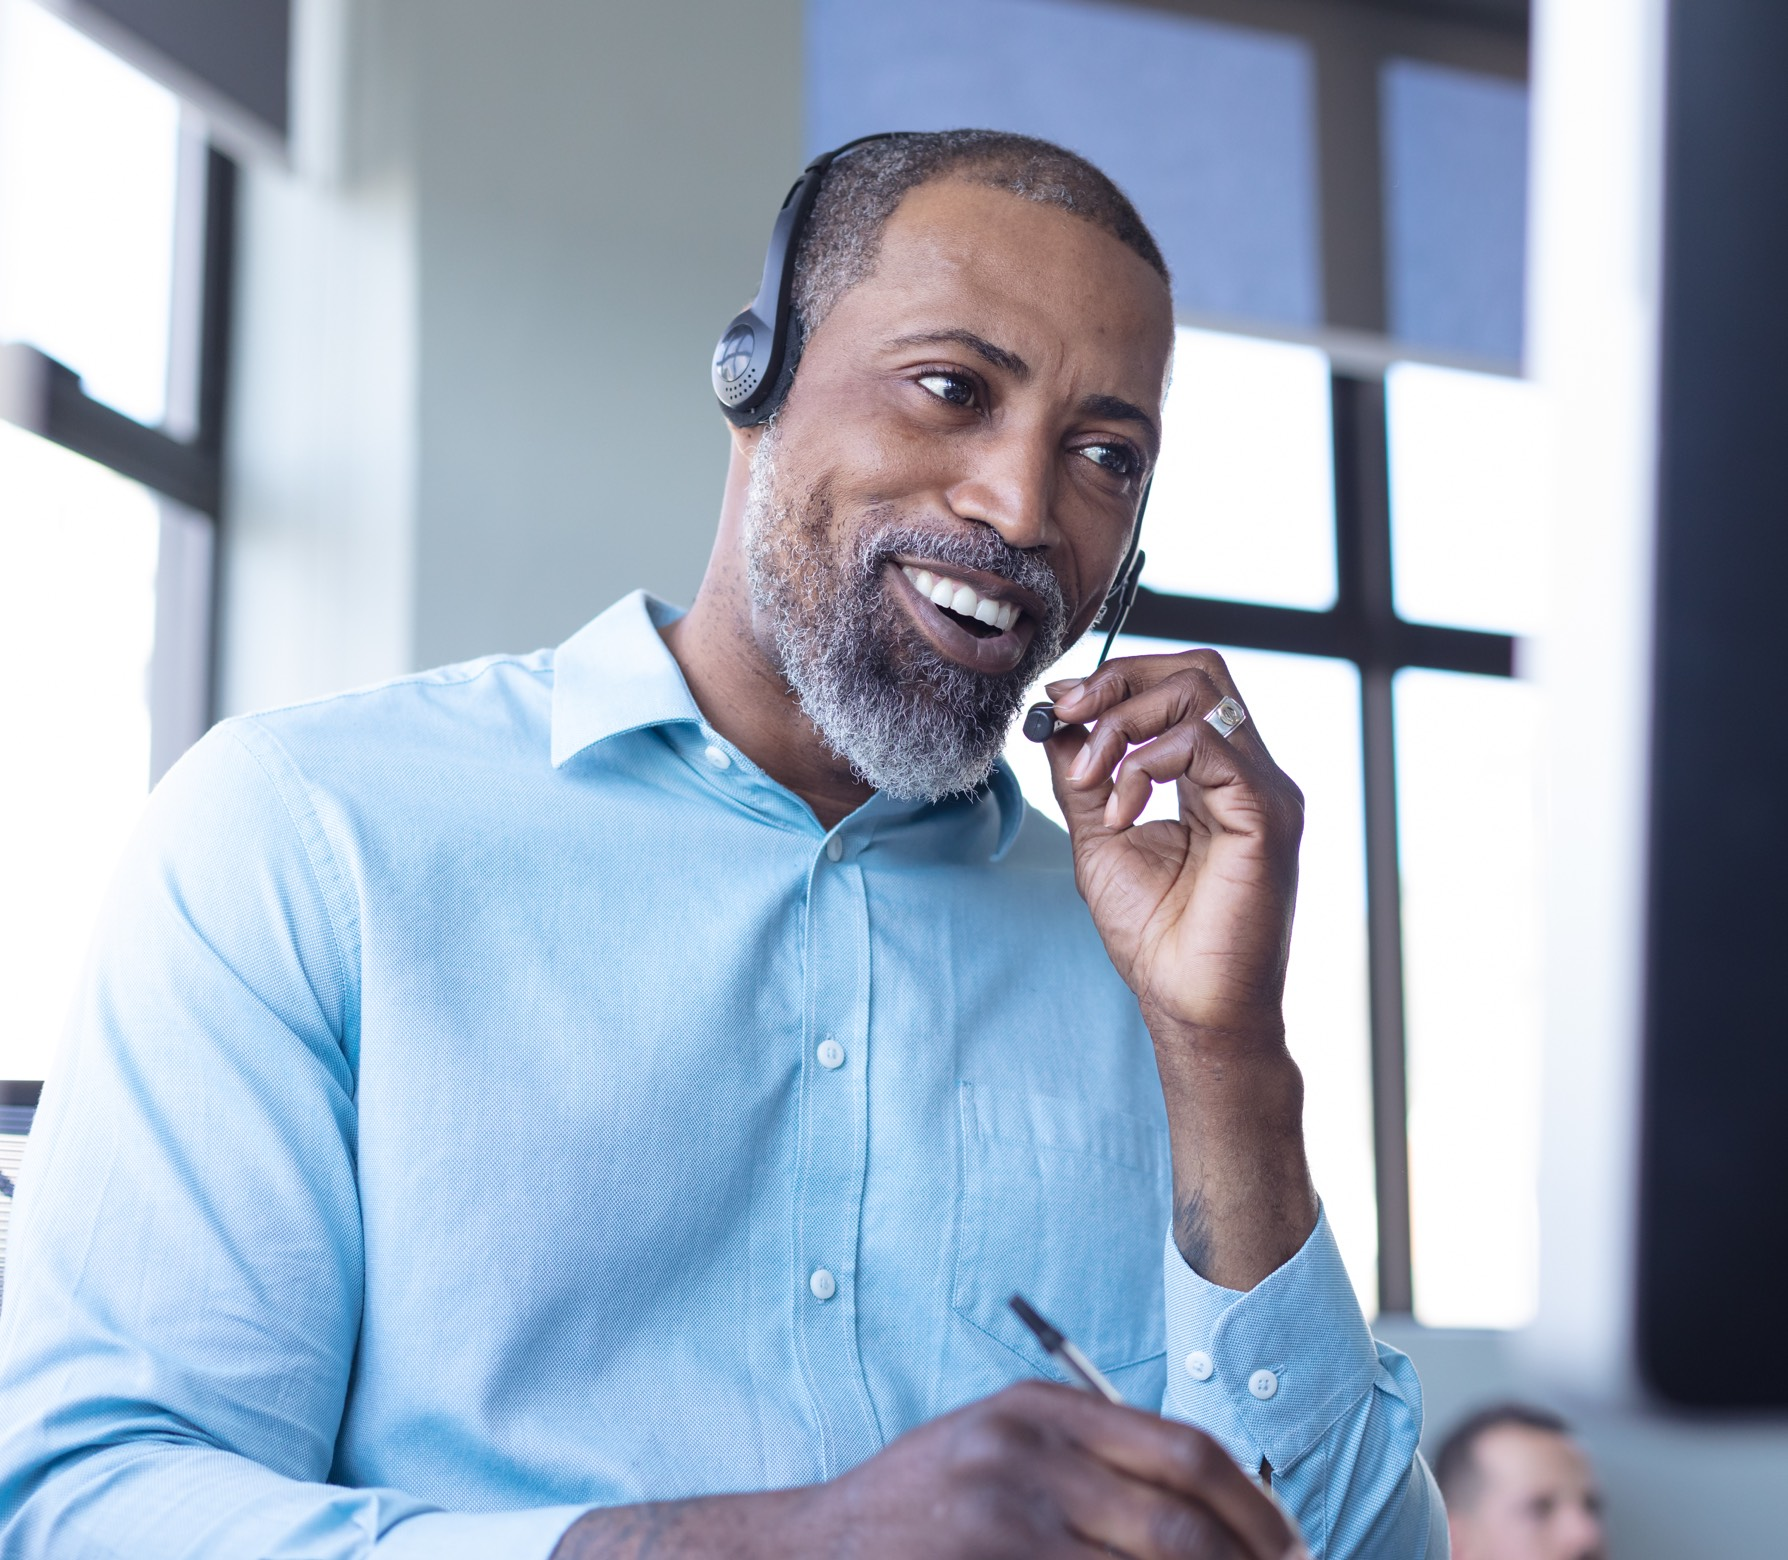 Image of a male call center employee smiling whilst taking a call with a customer